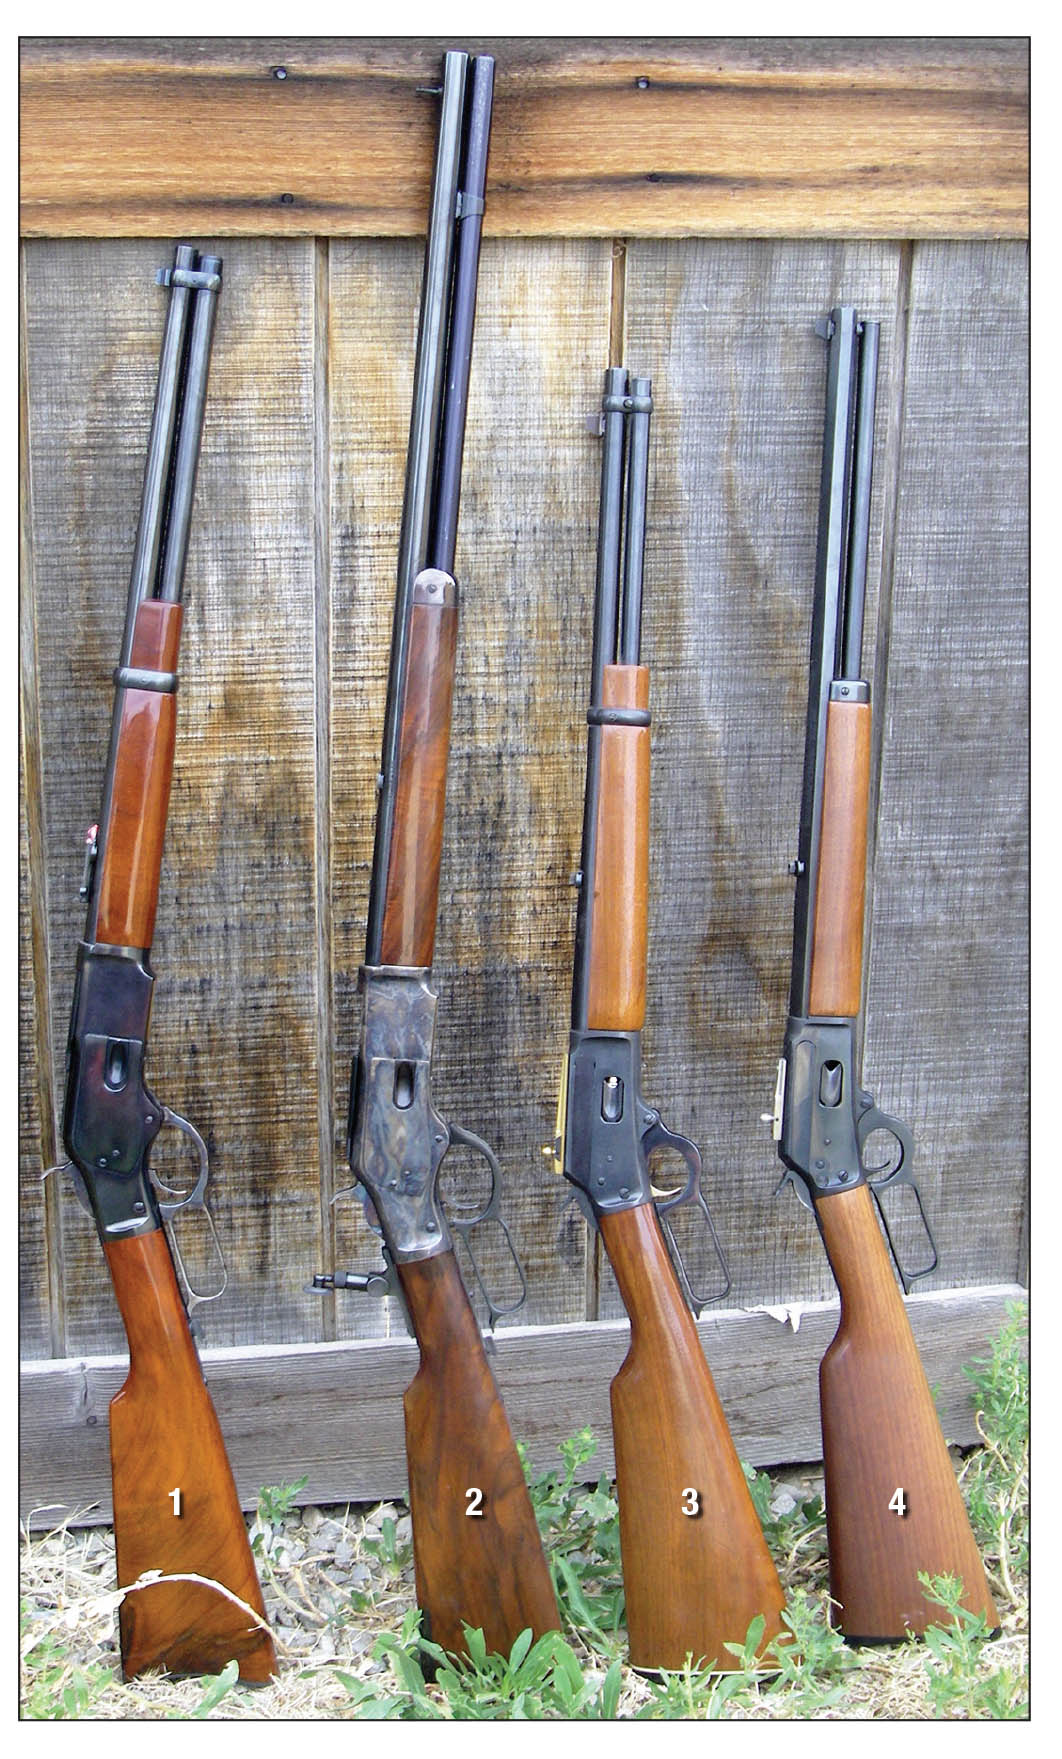 These lever-action rifles were very popular: (1) Uberti 1873 .357 Magnum, (2) Cimarron 1873 Carbine .45 Colt, (3) Marlin 1894 carbine .357 Magnum, (4) Marlin 1894 Cowboy .45 Colt.